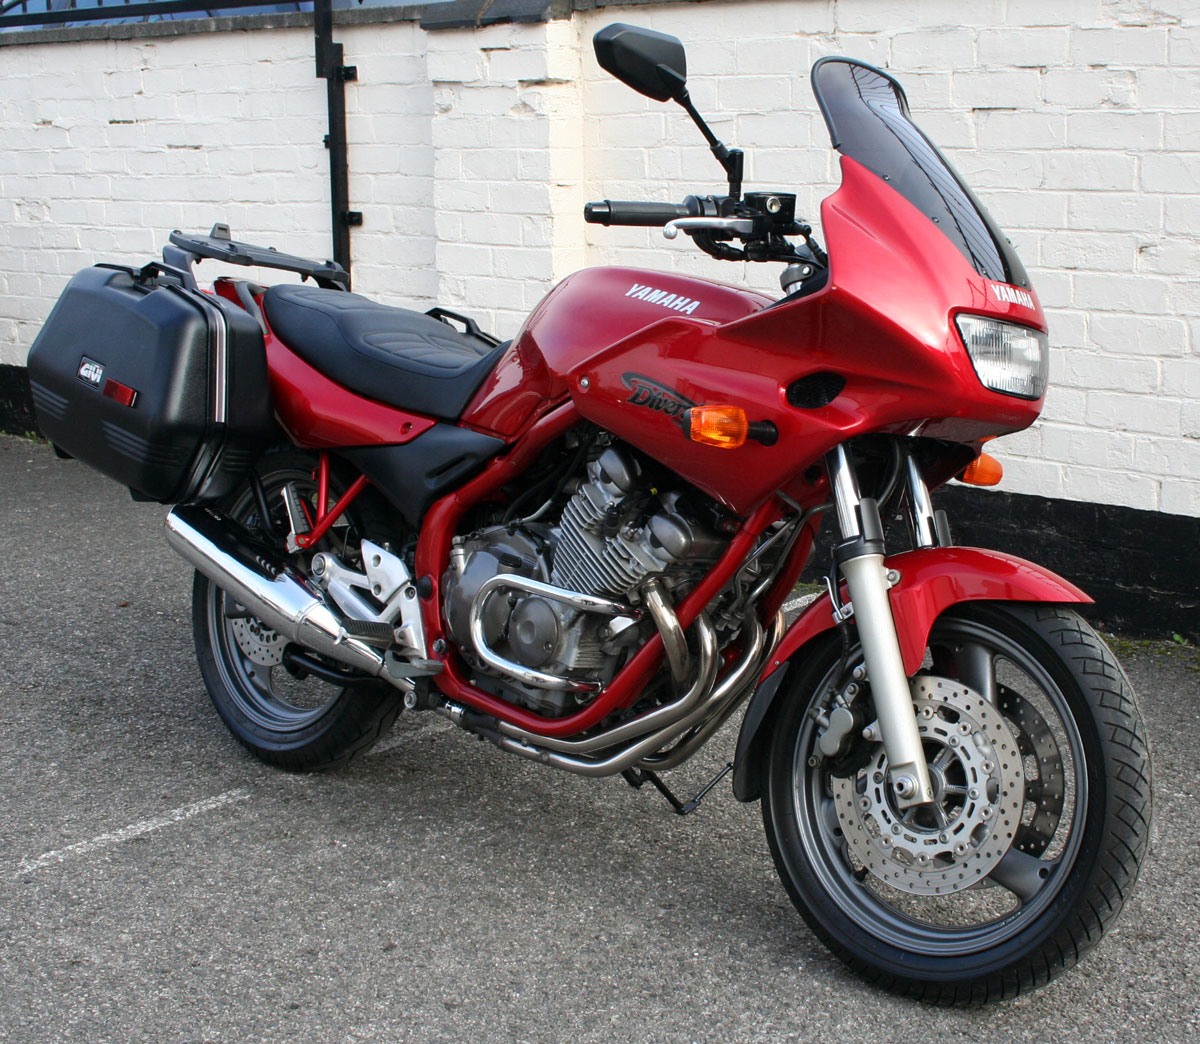 yamaha xj600 diversion for sale mansfield nottinghamshire leicestershire midlands. Black Bedroom Furniture Sets. Home Design Ideas